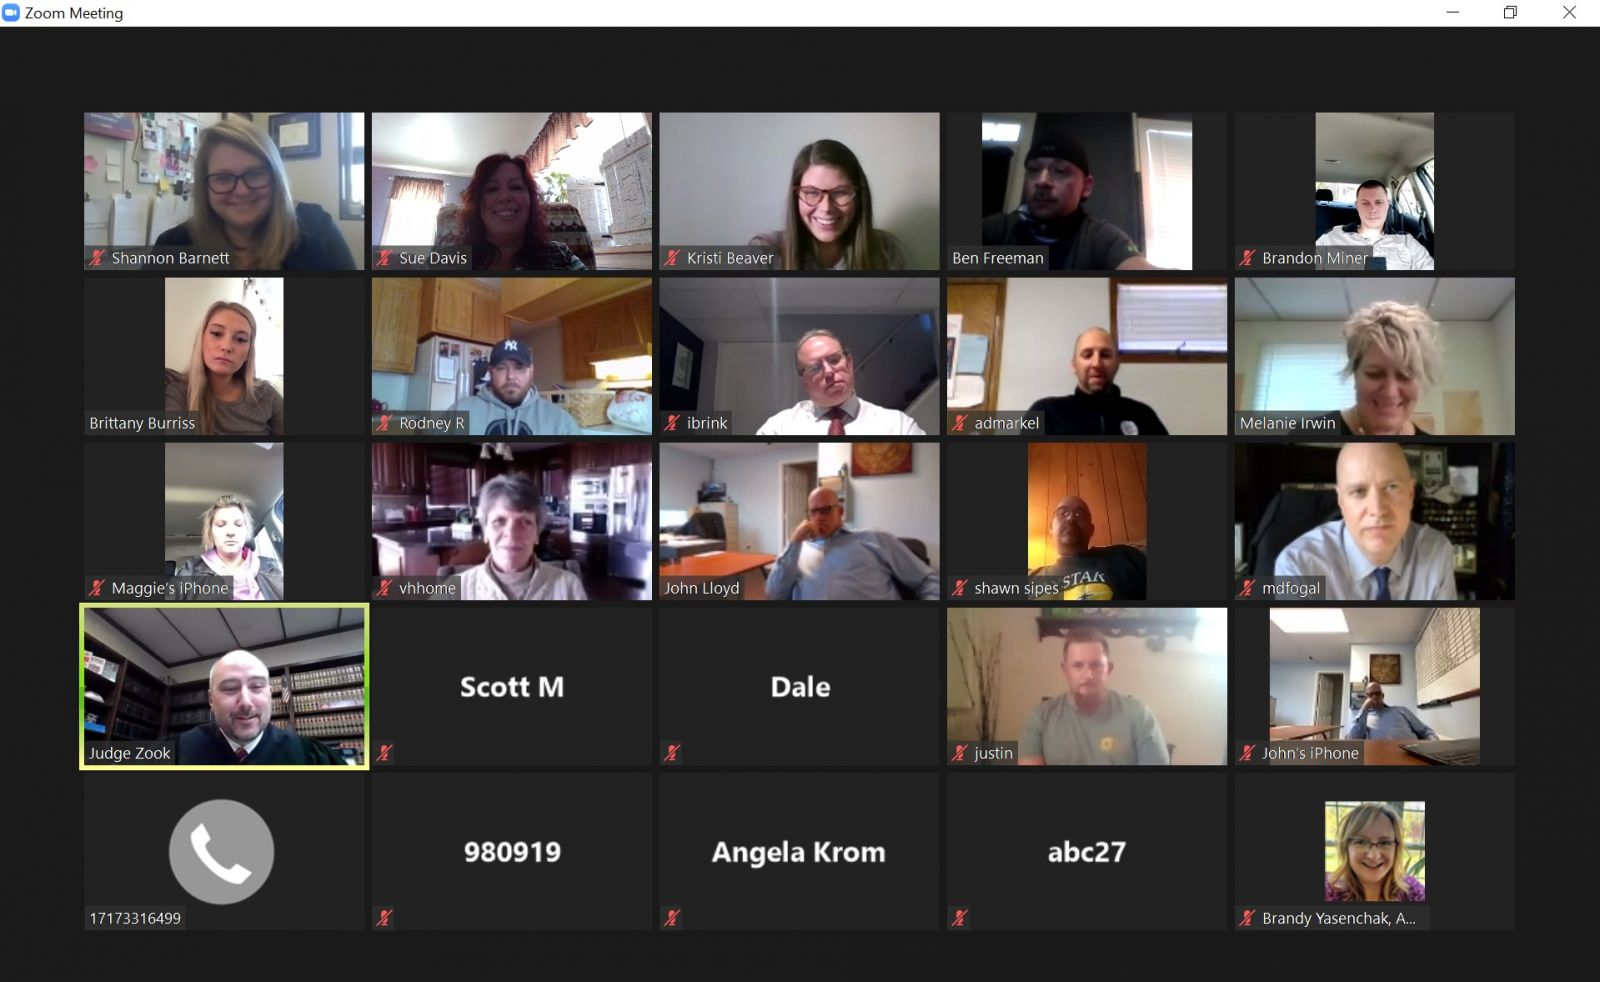 zoom meeting with profiles of 18 men and women